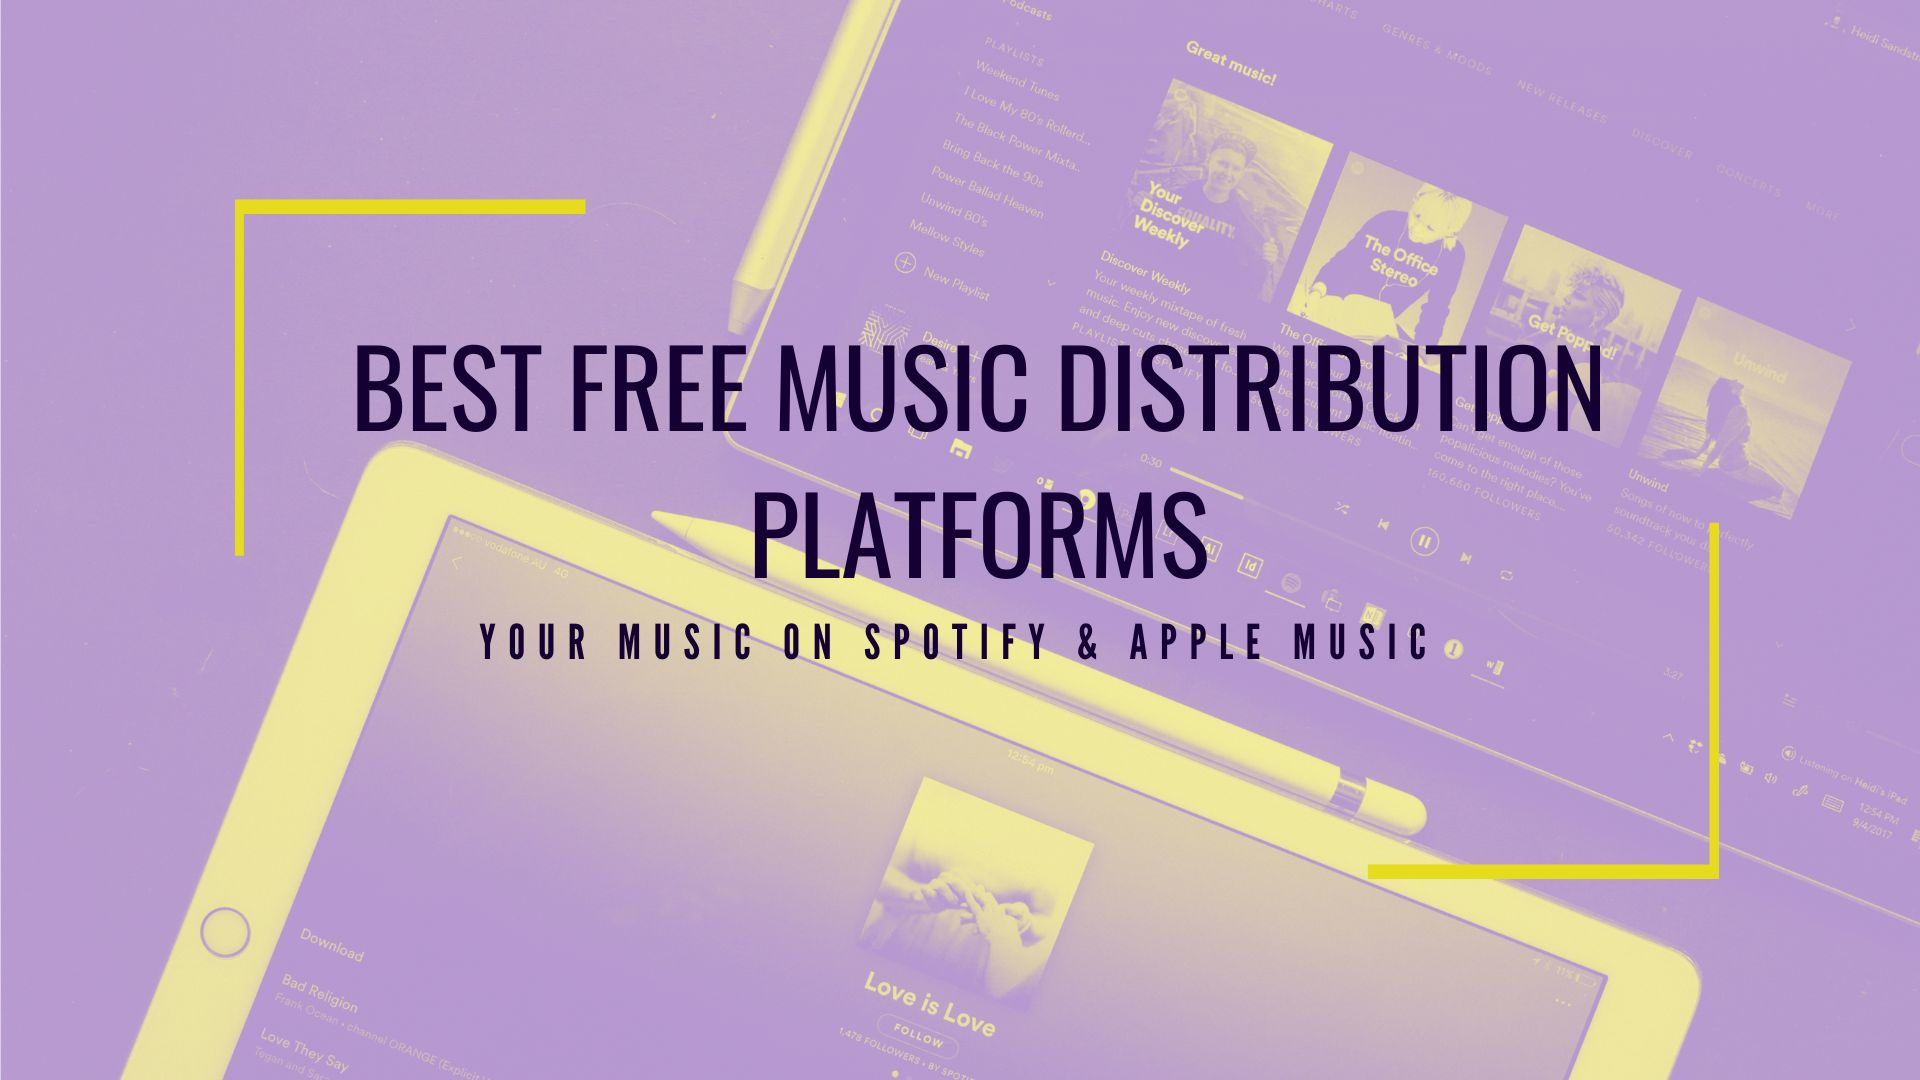 Free Music Distribution: 7 Best Aggregator Services for Spotify